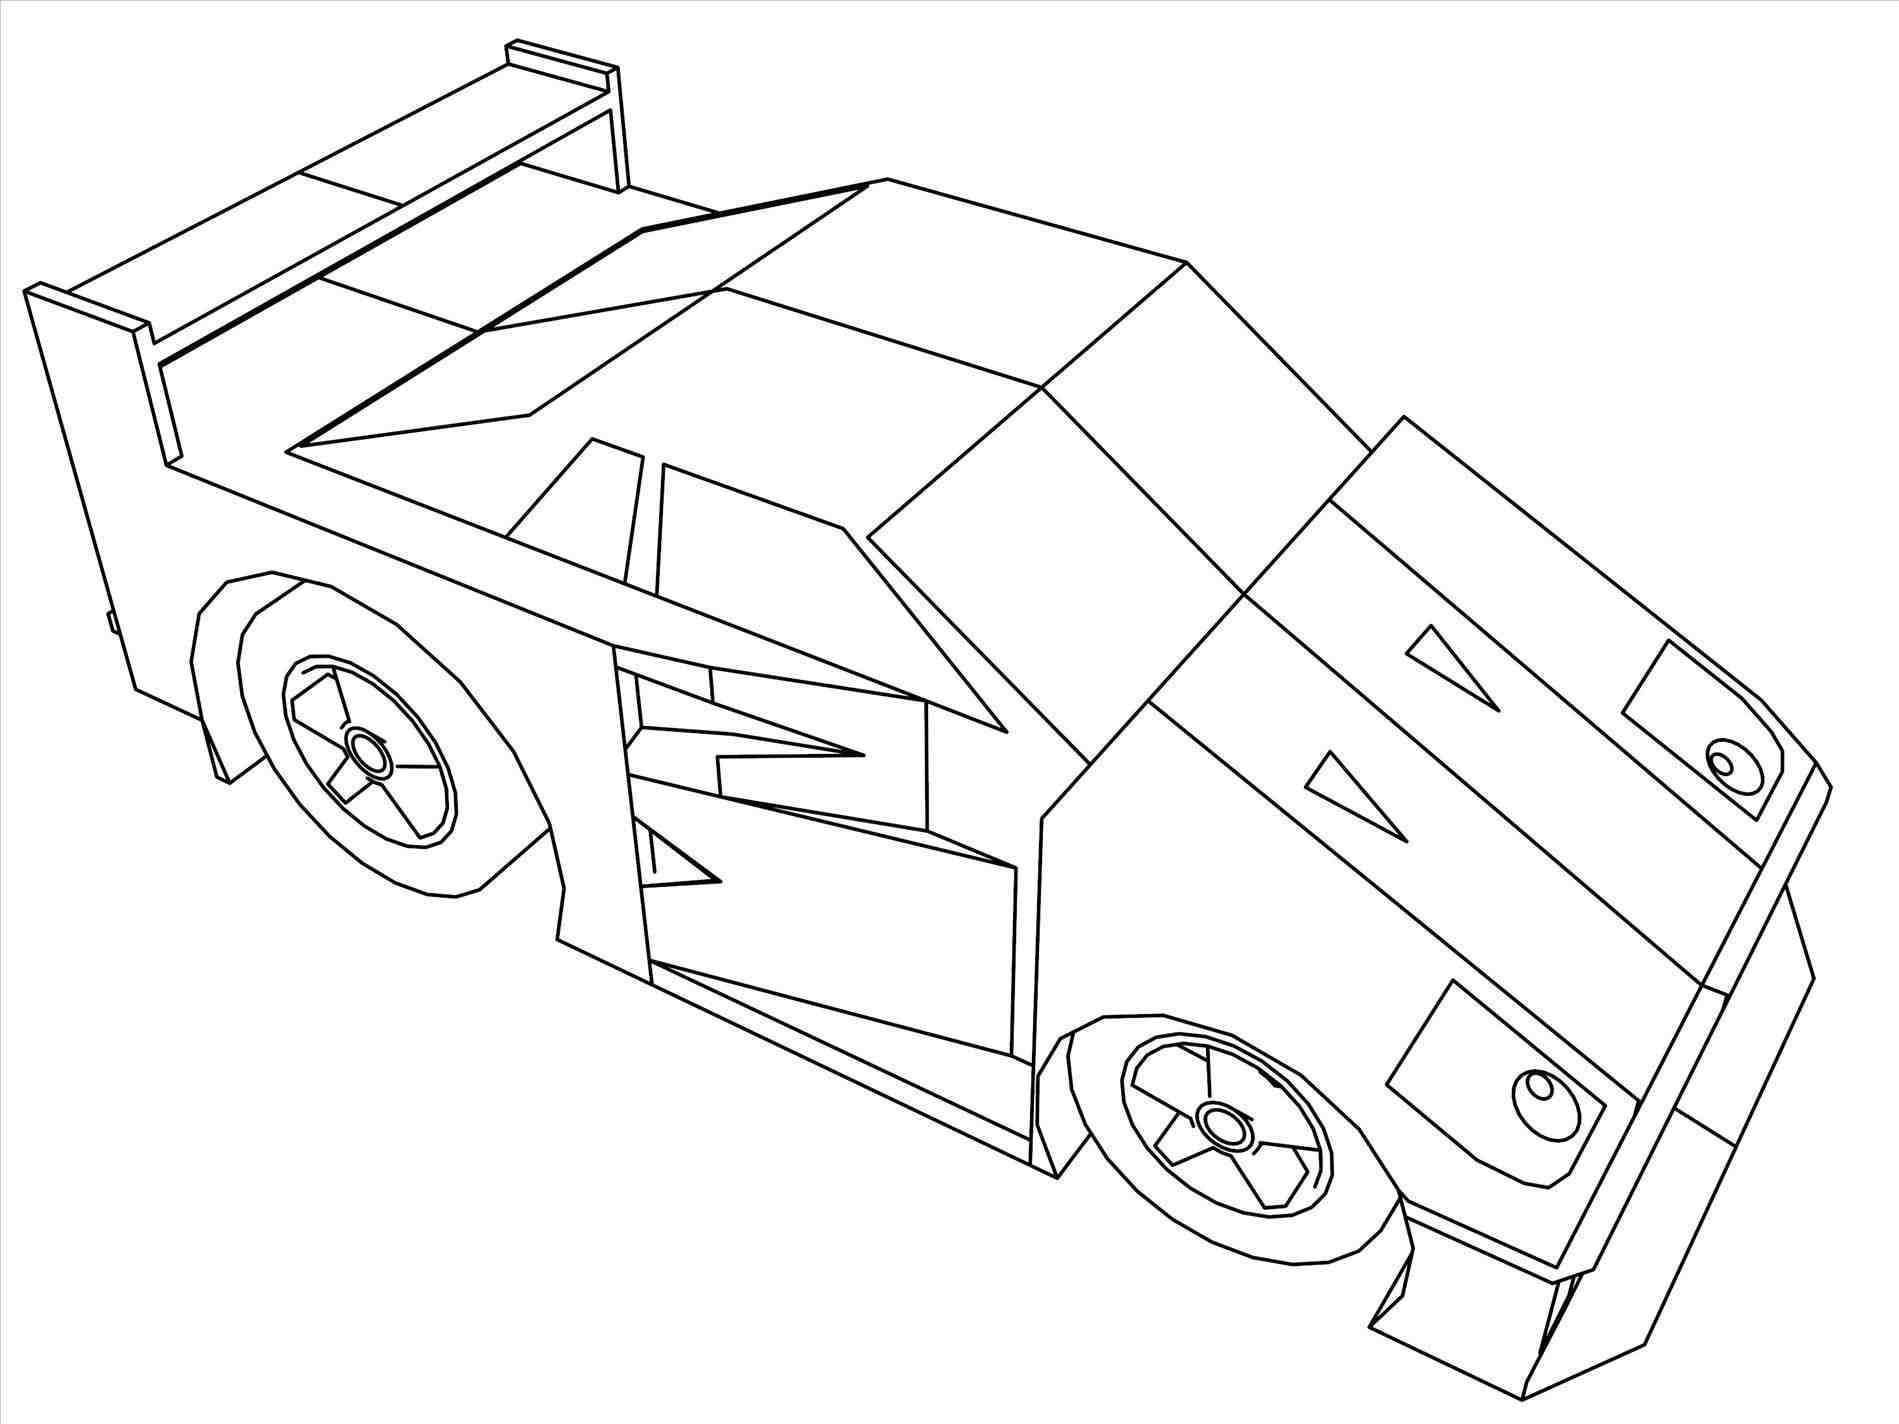 Mitsubishi Eclipse Coloring Pages At Getcolorings